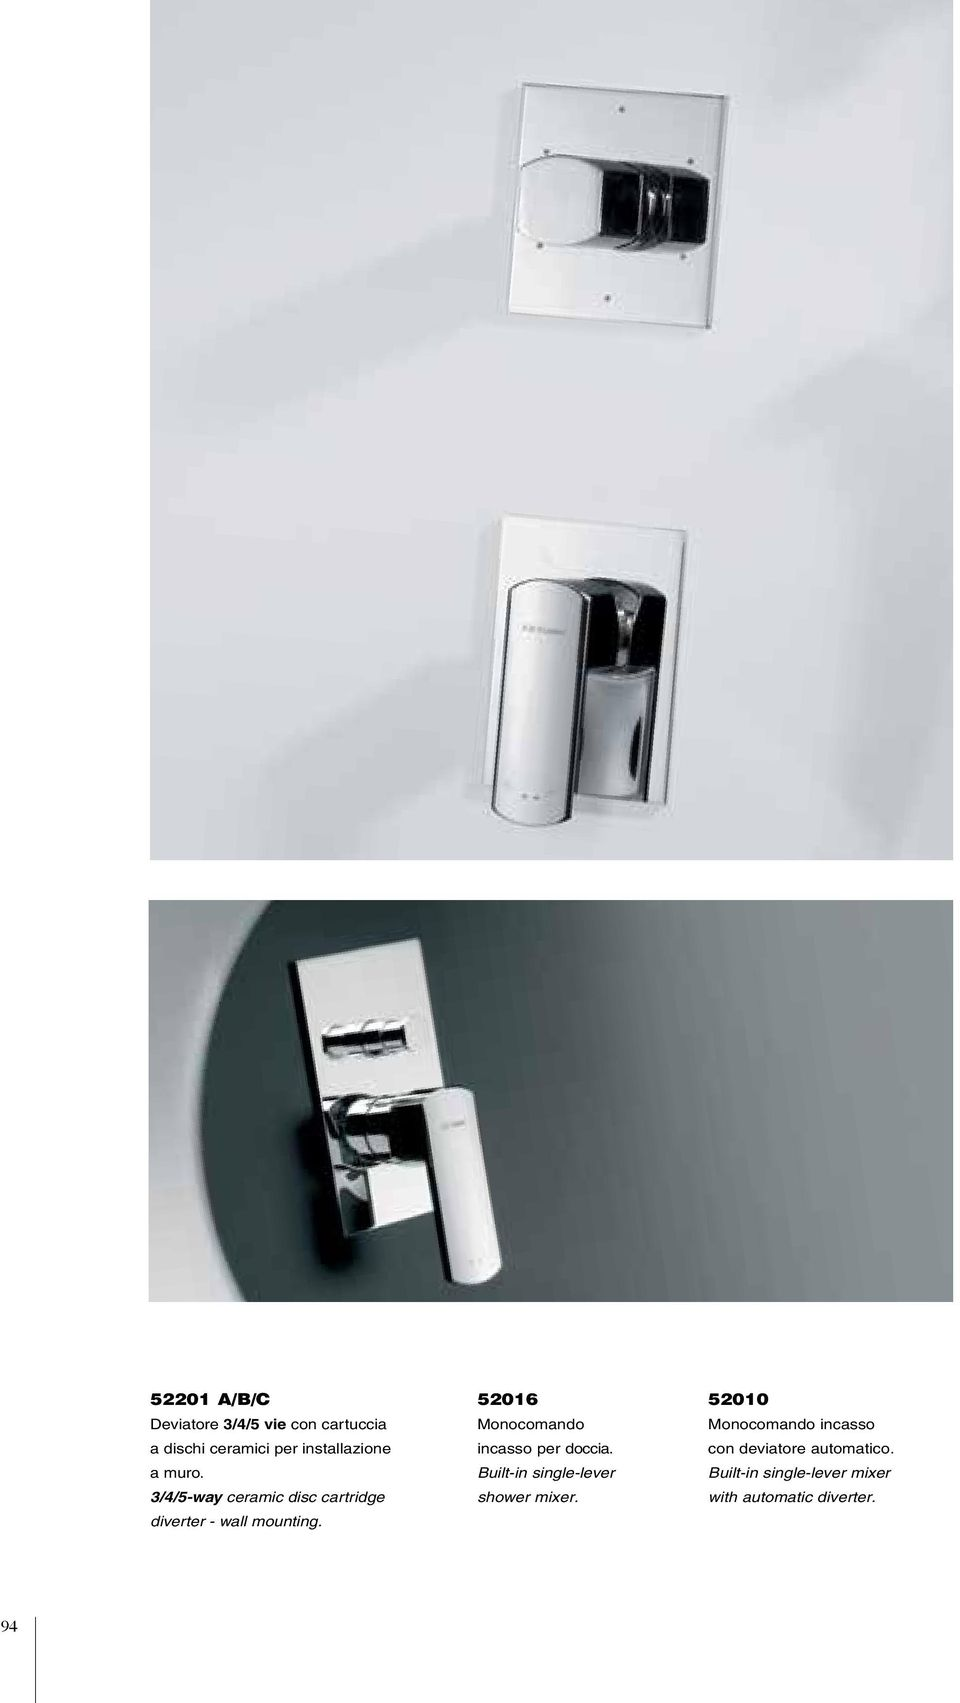 52016 Monocomando incasso per doccia. Built-in single-lever shower mixer.